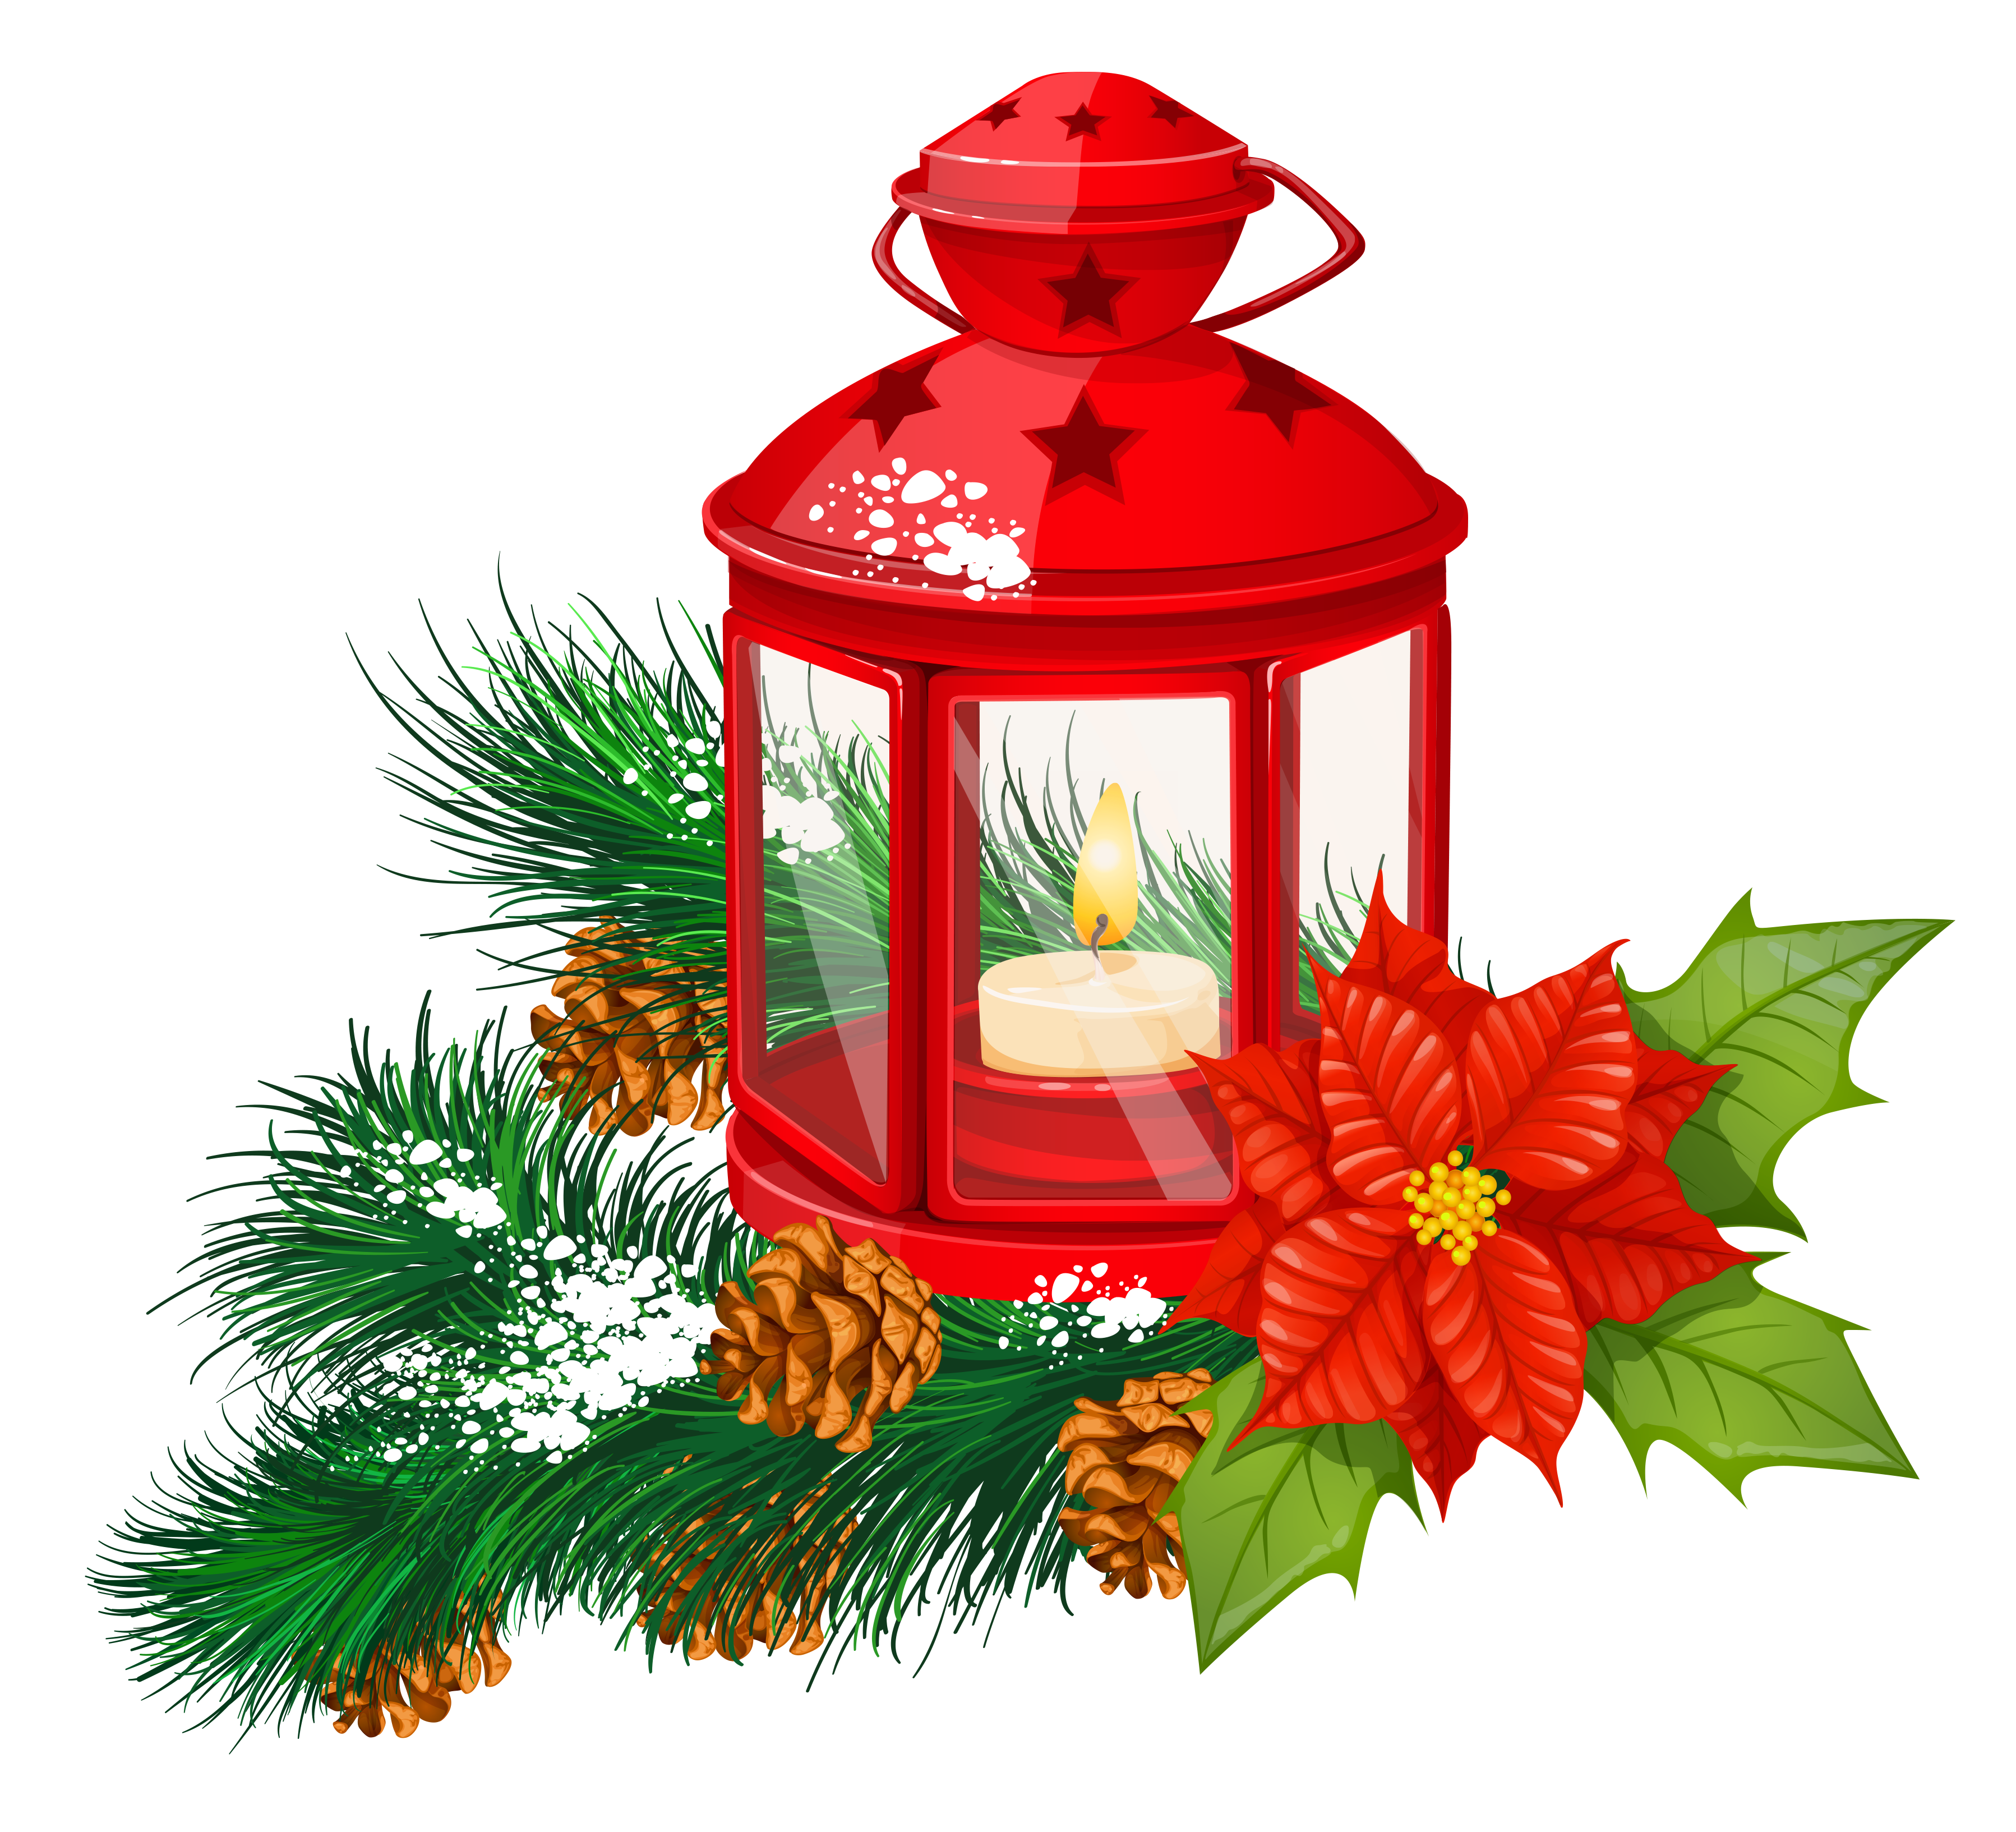 jpg Lantern clipart hawaiian. Kerosene lamp free on.